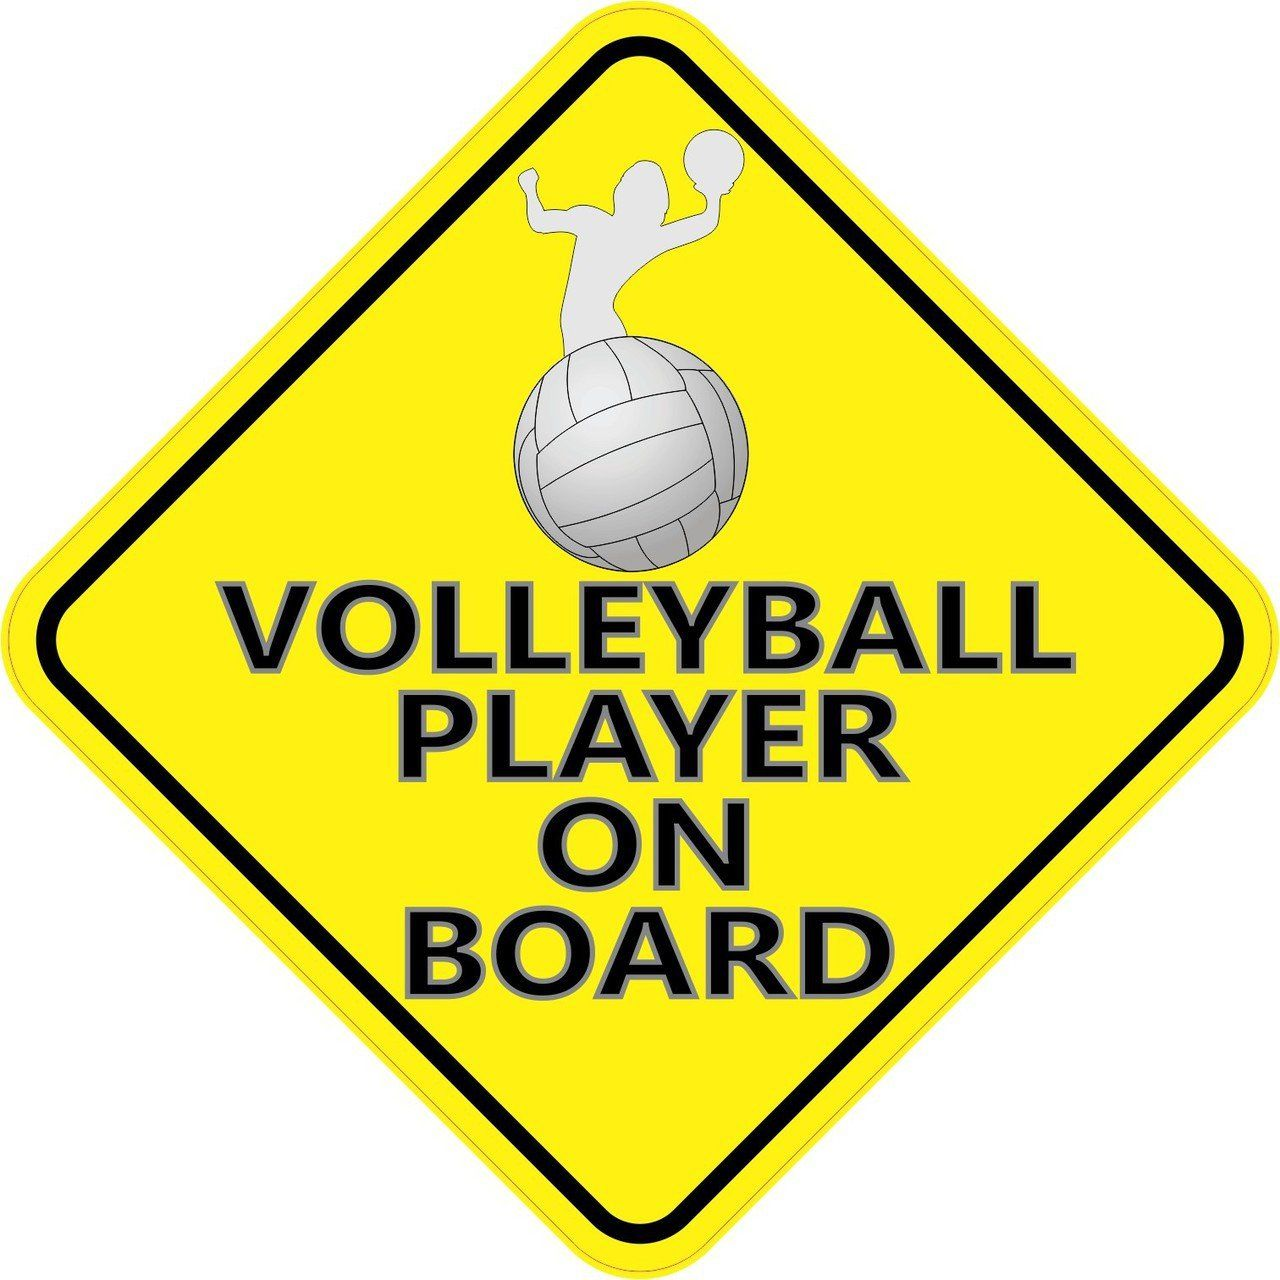 5in X 5in Volleyball Player On Board Sticker Stickertalk Vinyl Bumper Stickers Volleyball Volleyball Players